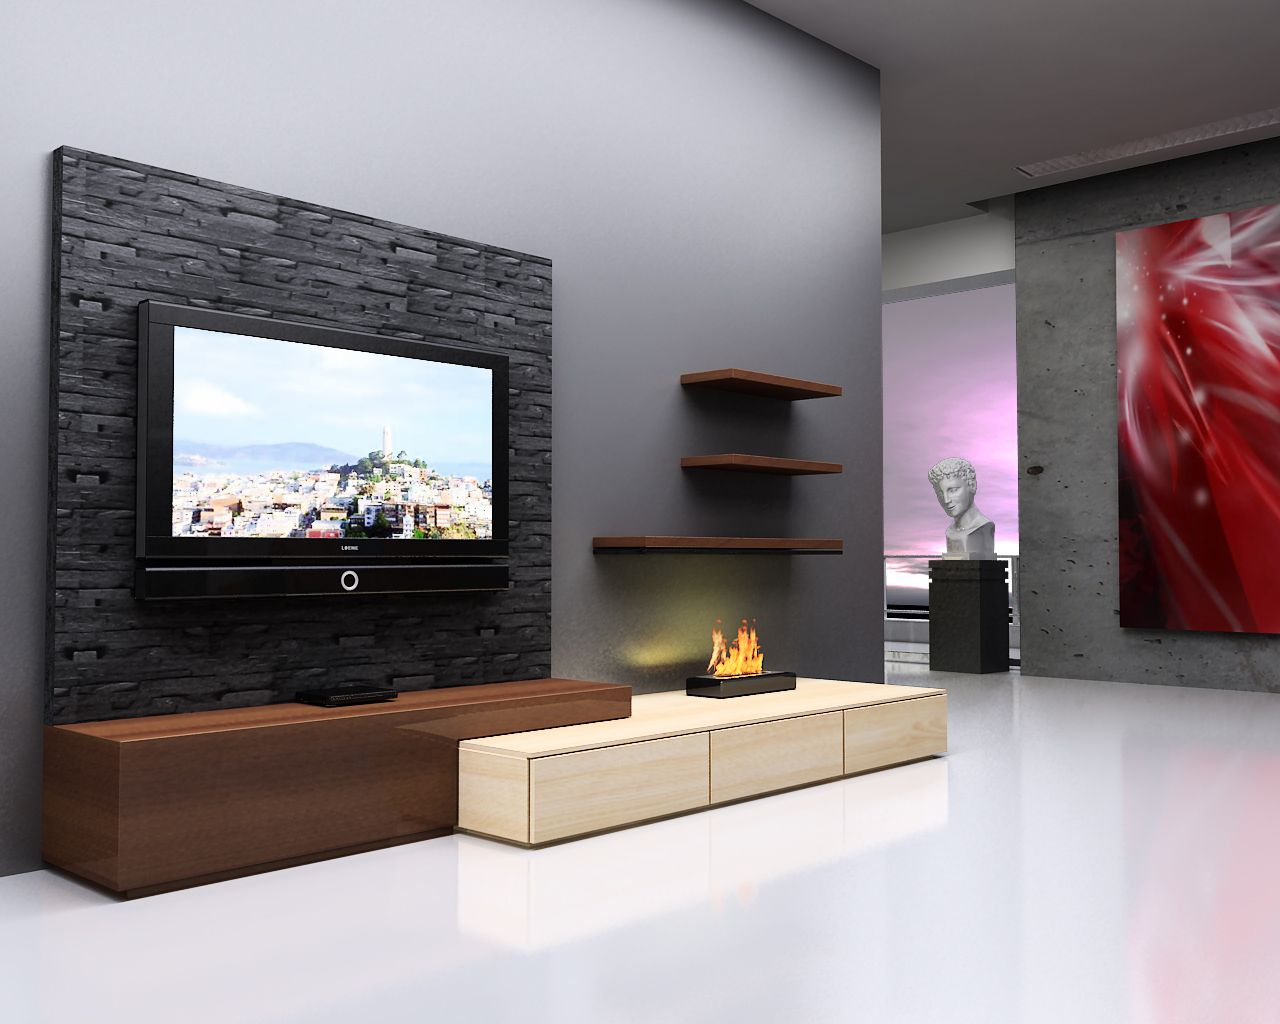 Wall Unit Design Images : Lcd wall unit pinteres